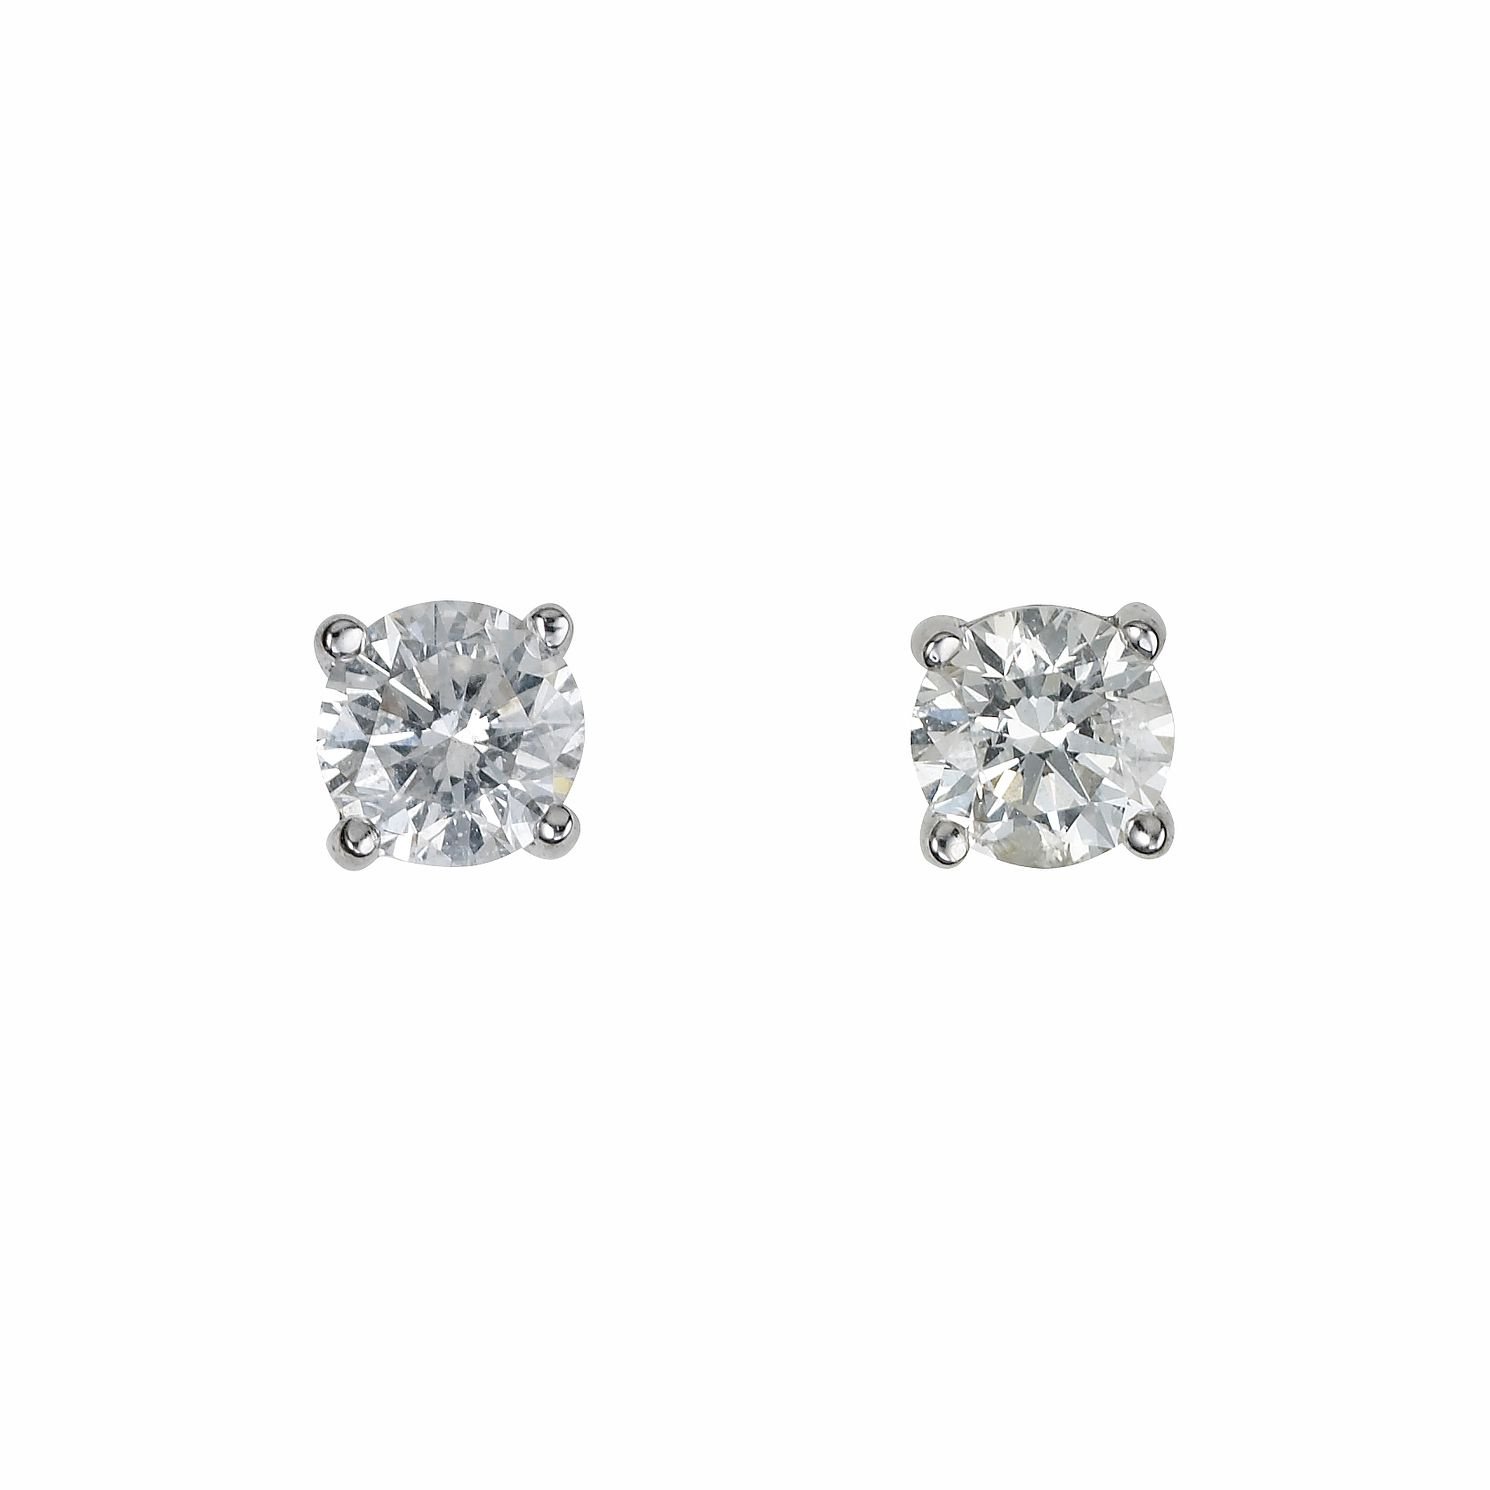 18ct White Gold 1/2ct Diamond Solitaire Stud Earrings - Product number 5778247